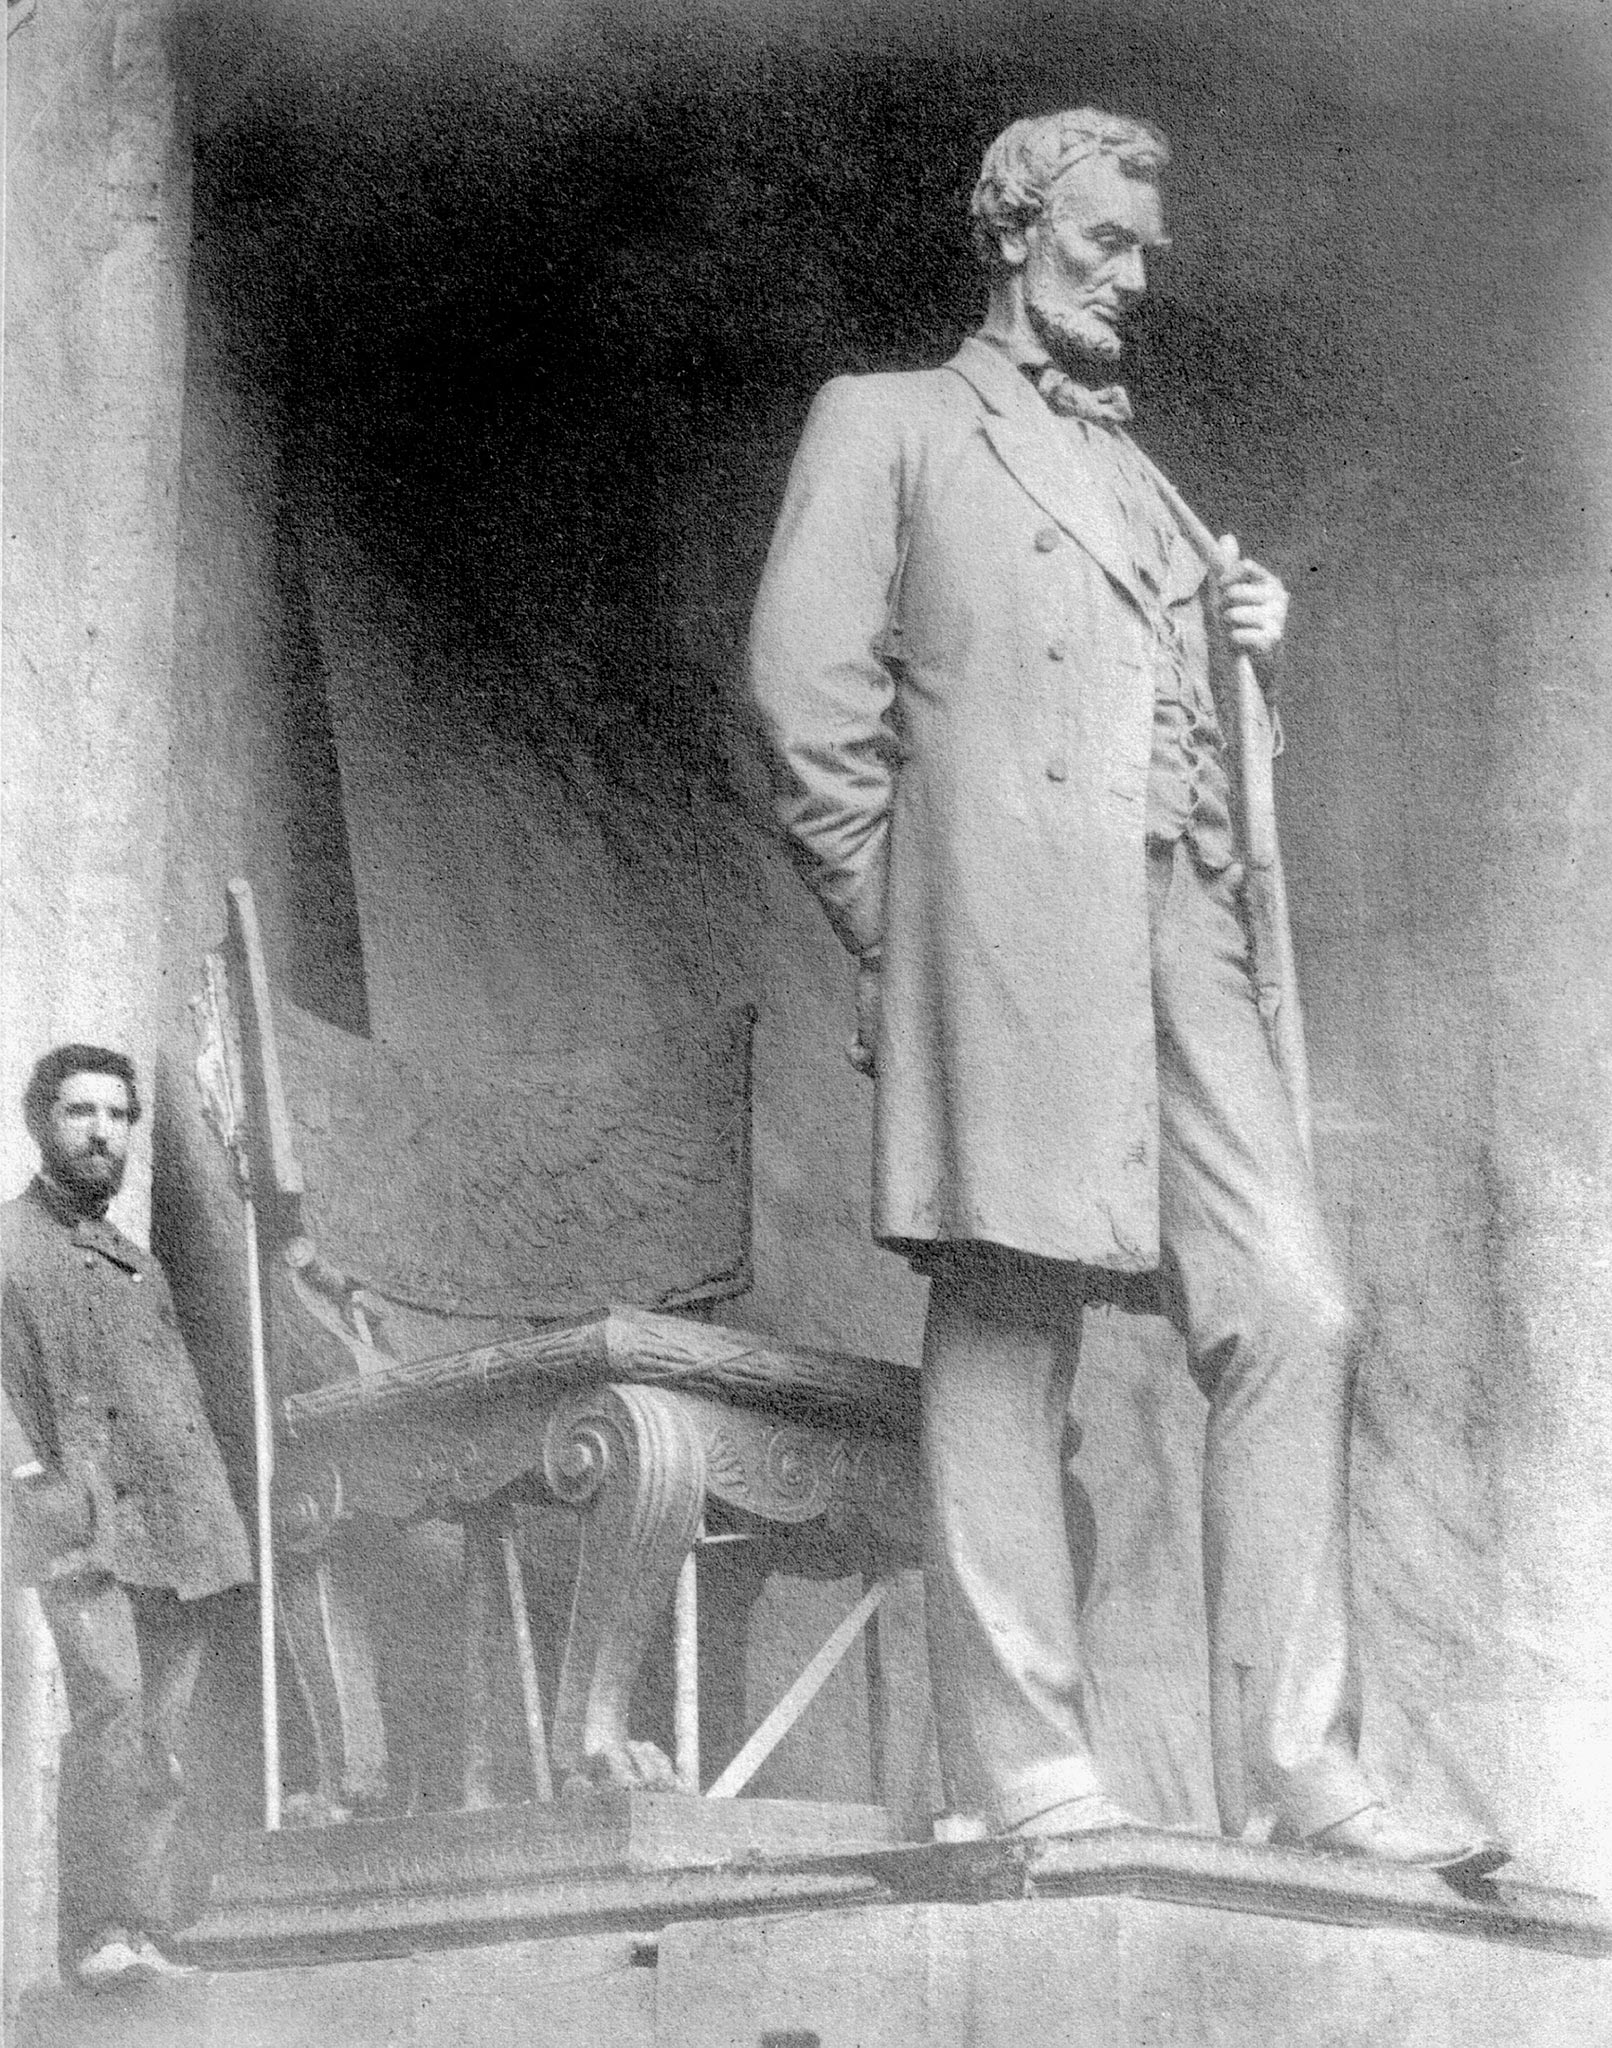 Saint-Gaudens and the Standing Lincoln, Photo: National Park Service